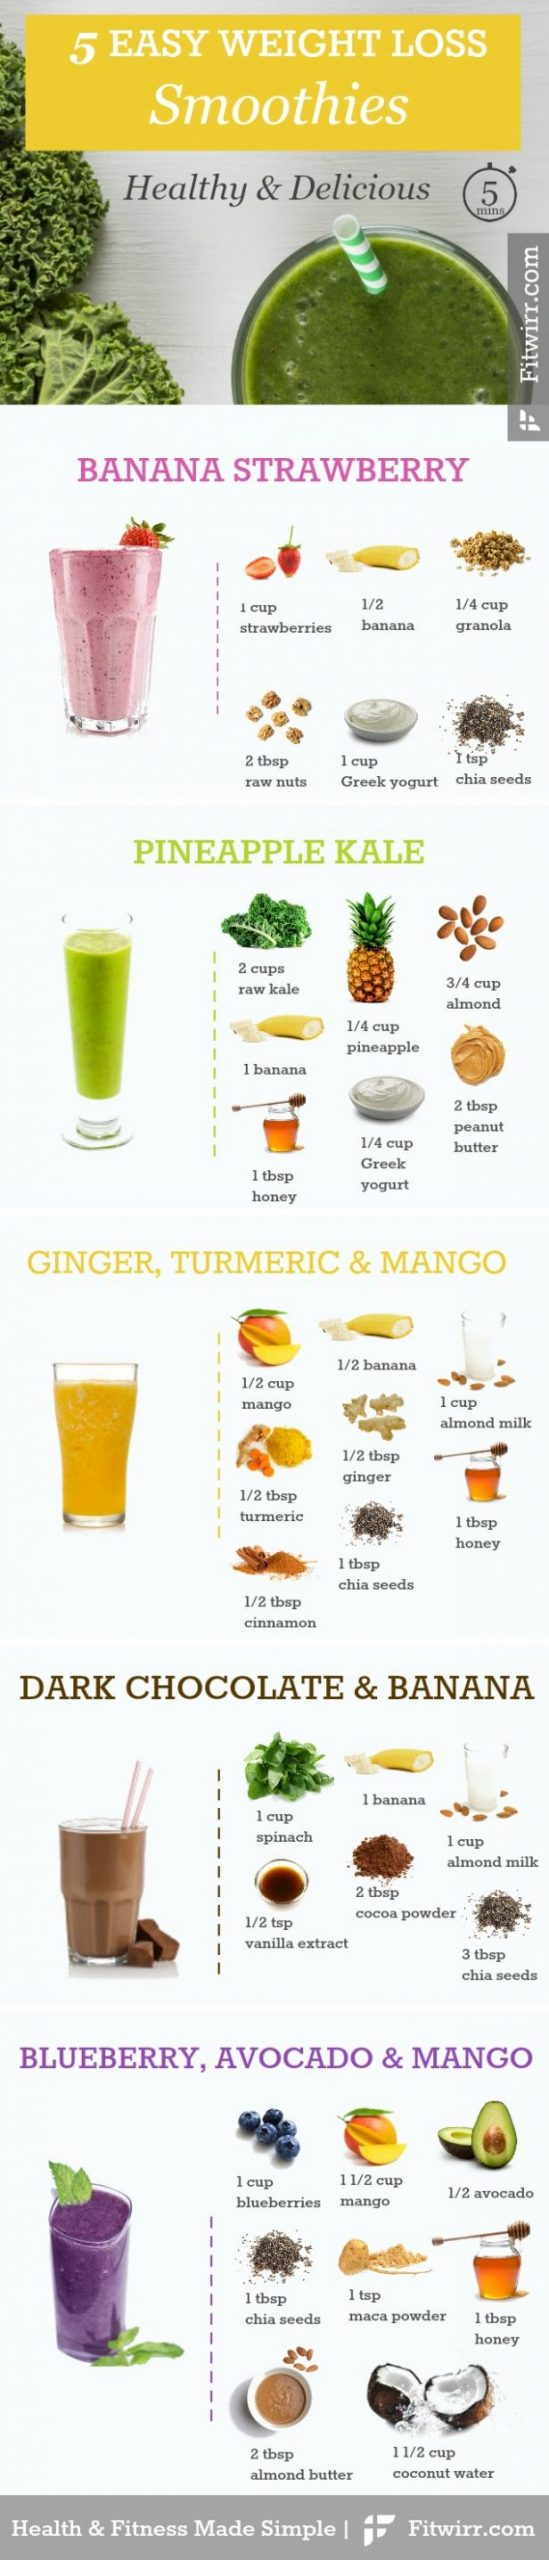 Healthy Smoothie Recipes - 8 Best Smoothies for Weight Loss - Fitwirr